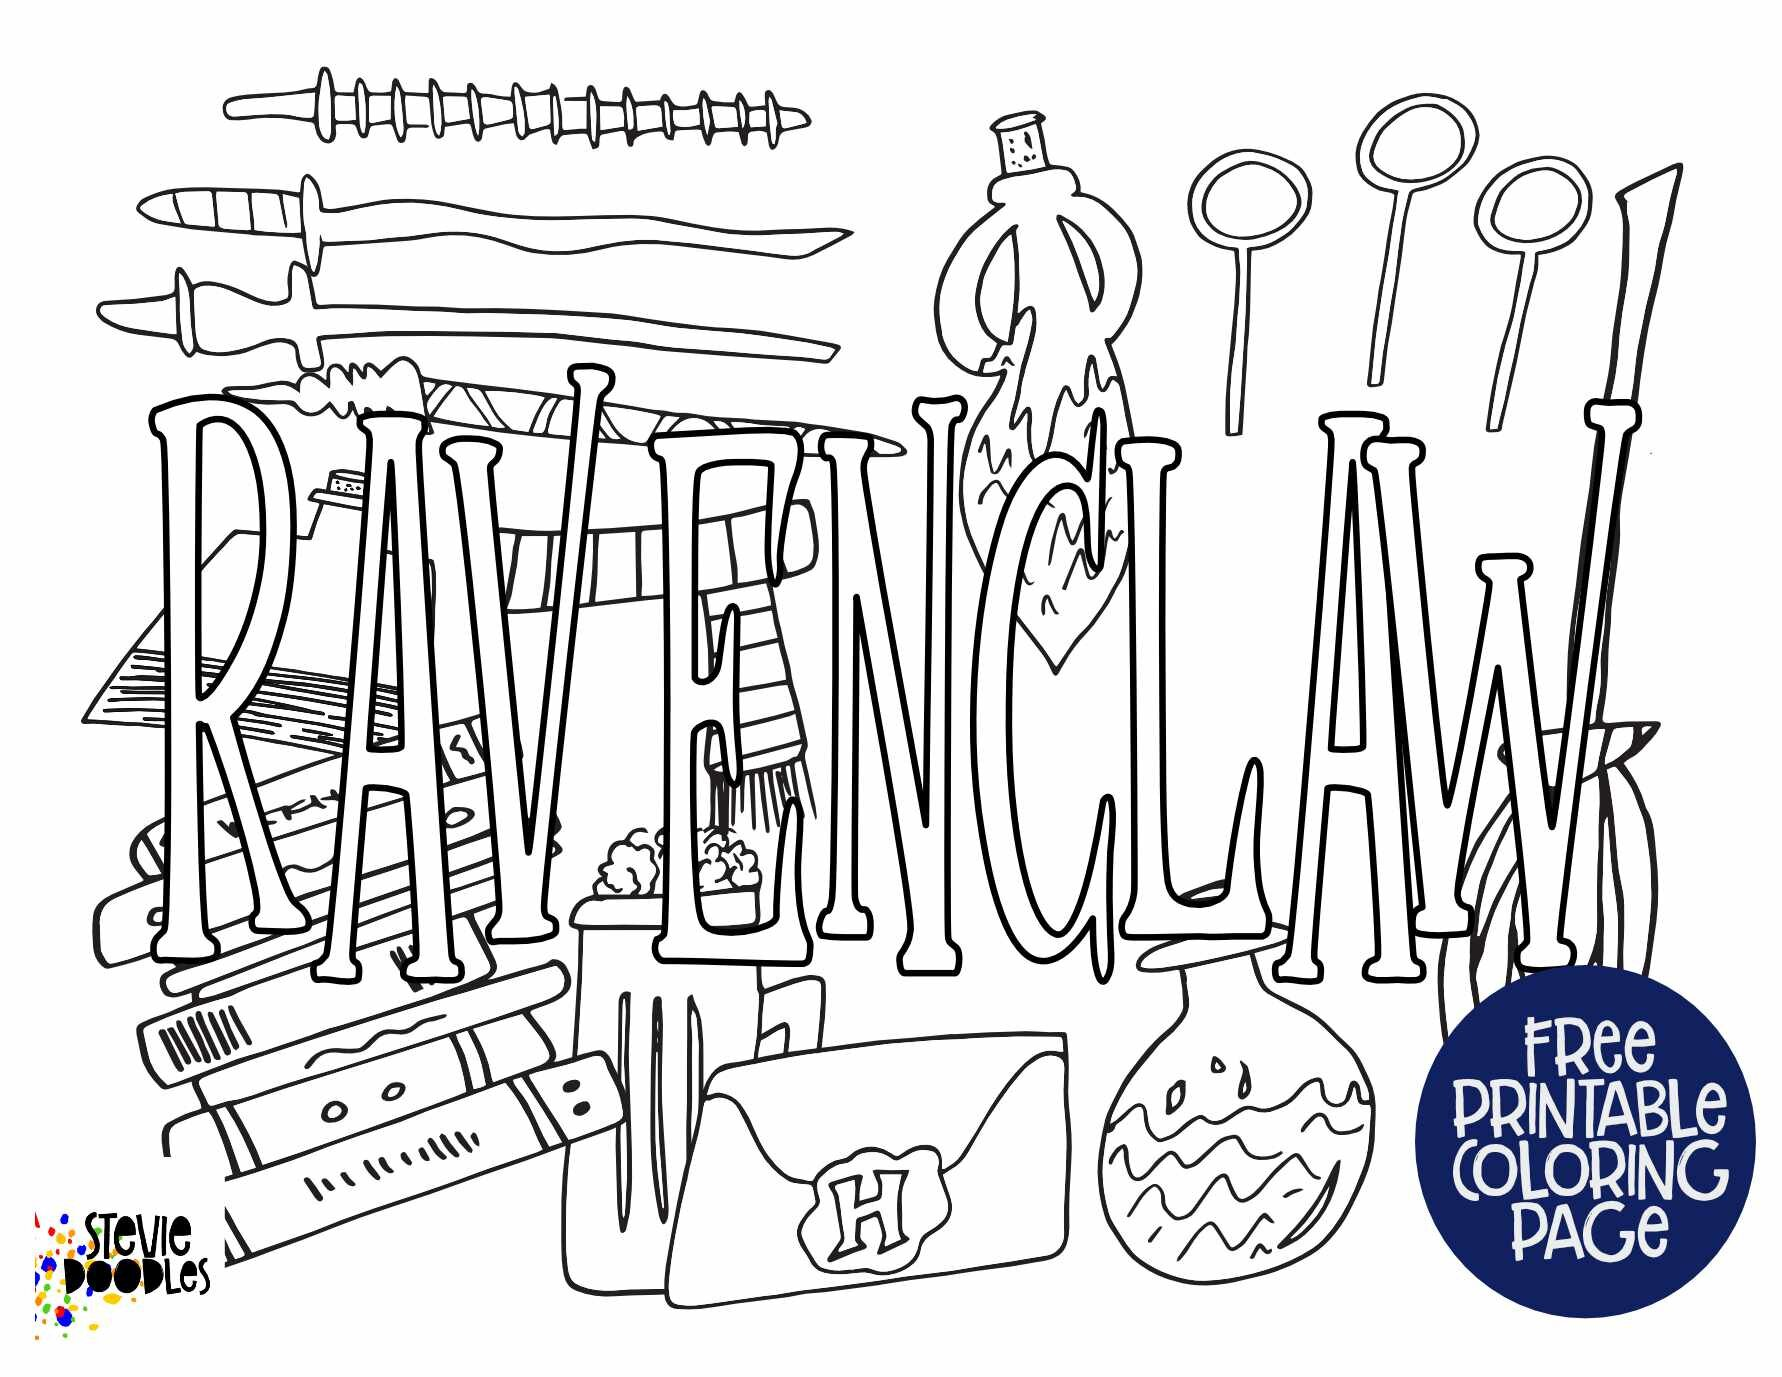 Free Printable Ravenclaw Coloring Pages — Stevie Doodles Free